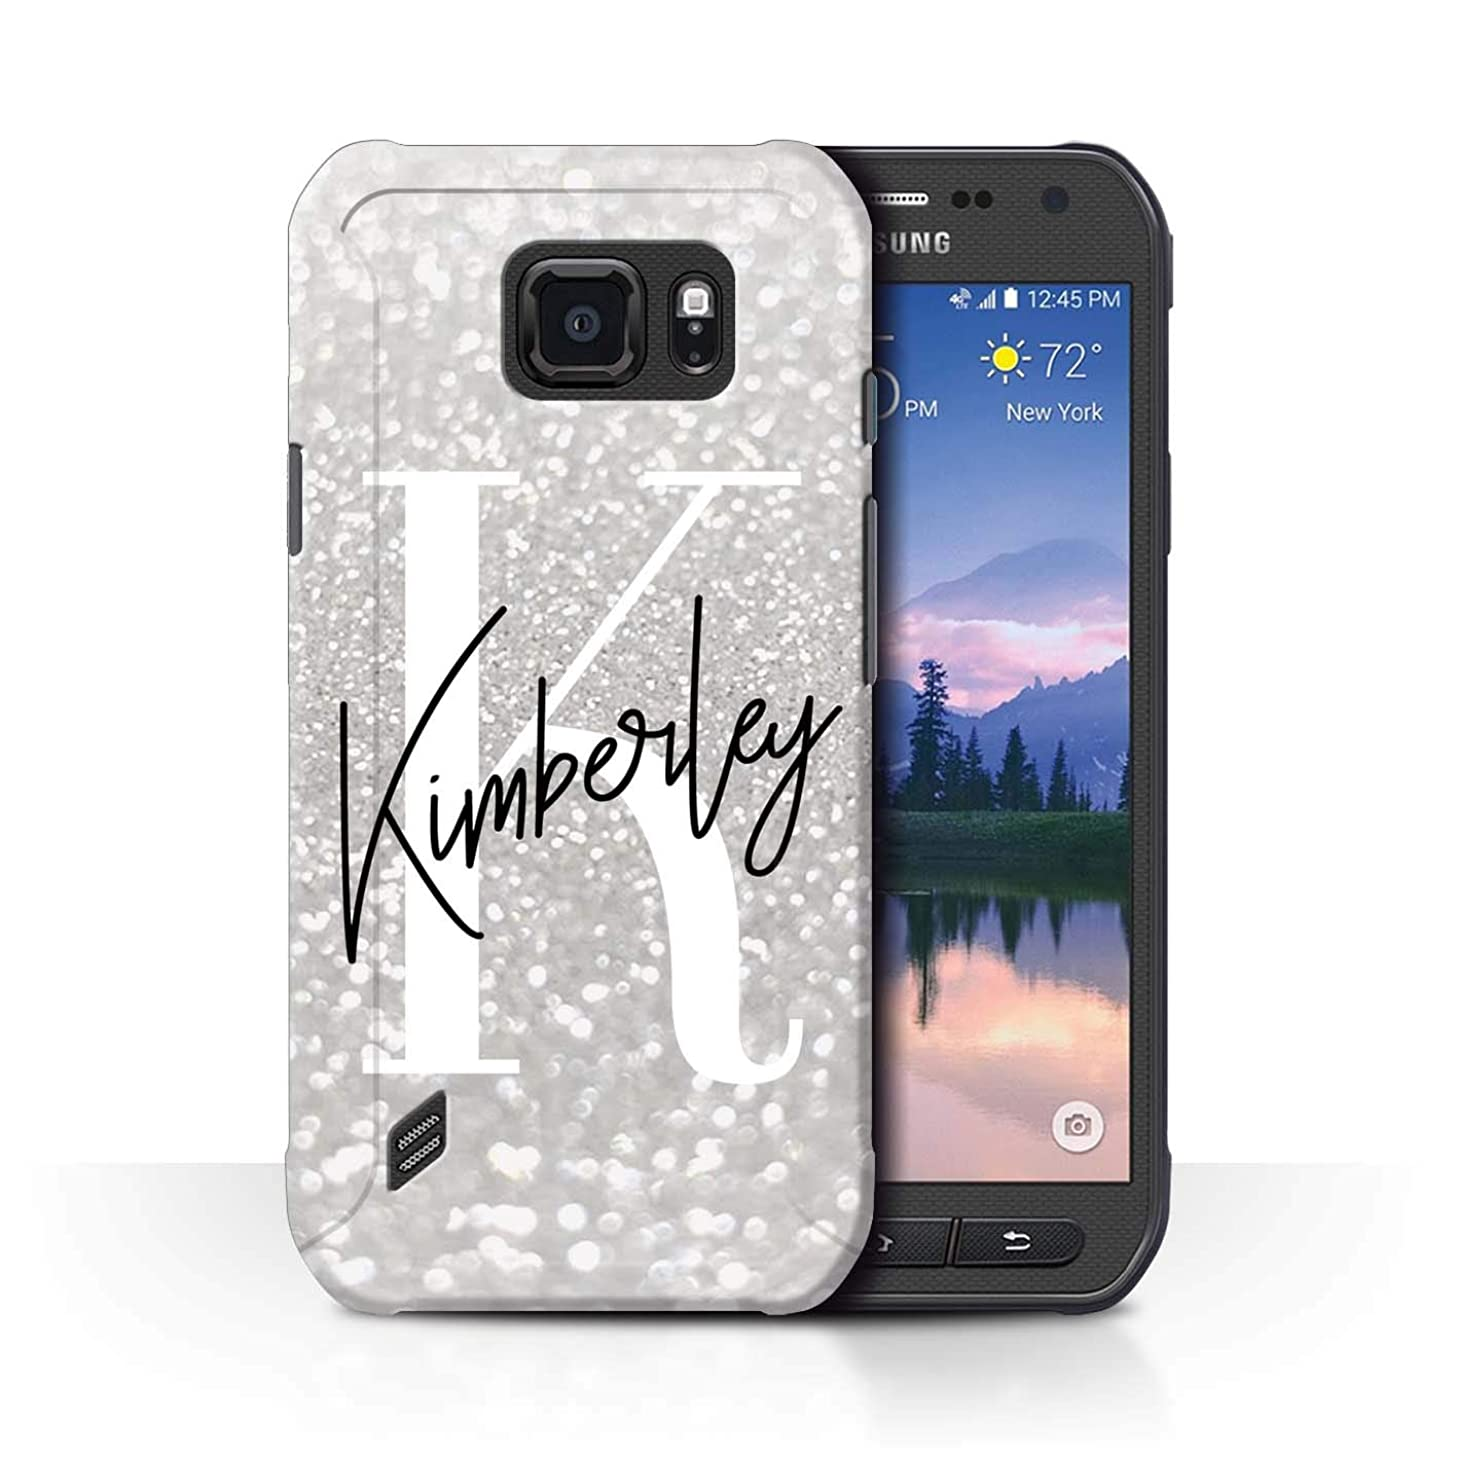 Personalized Custom Faded Look Glitter Effect Case for Samsung Galaxy S6 Active/G890 / Minimalist Silver Finish Design/Initial/Name/Text DIY Cover